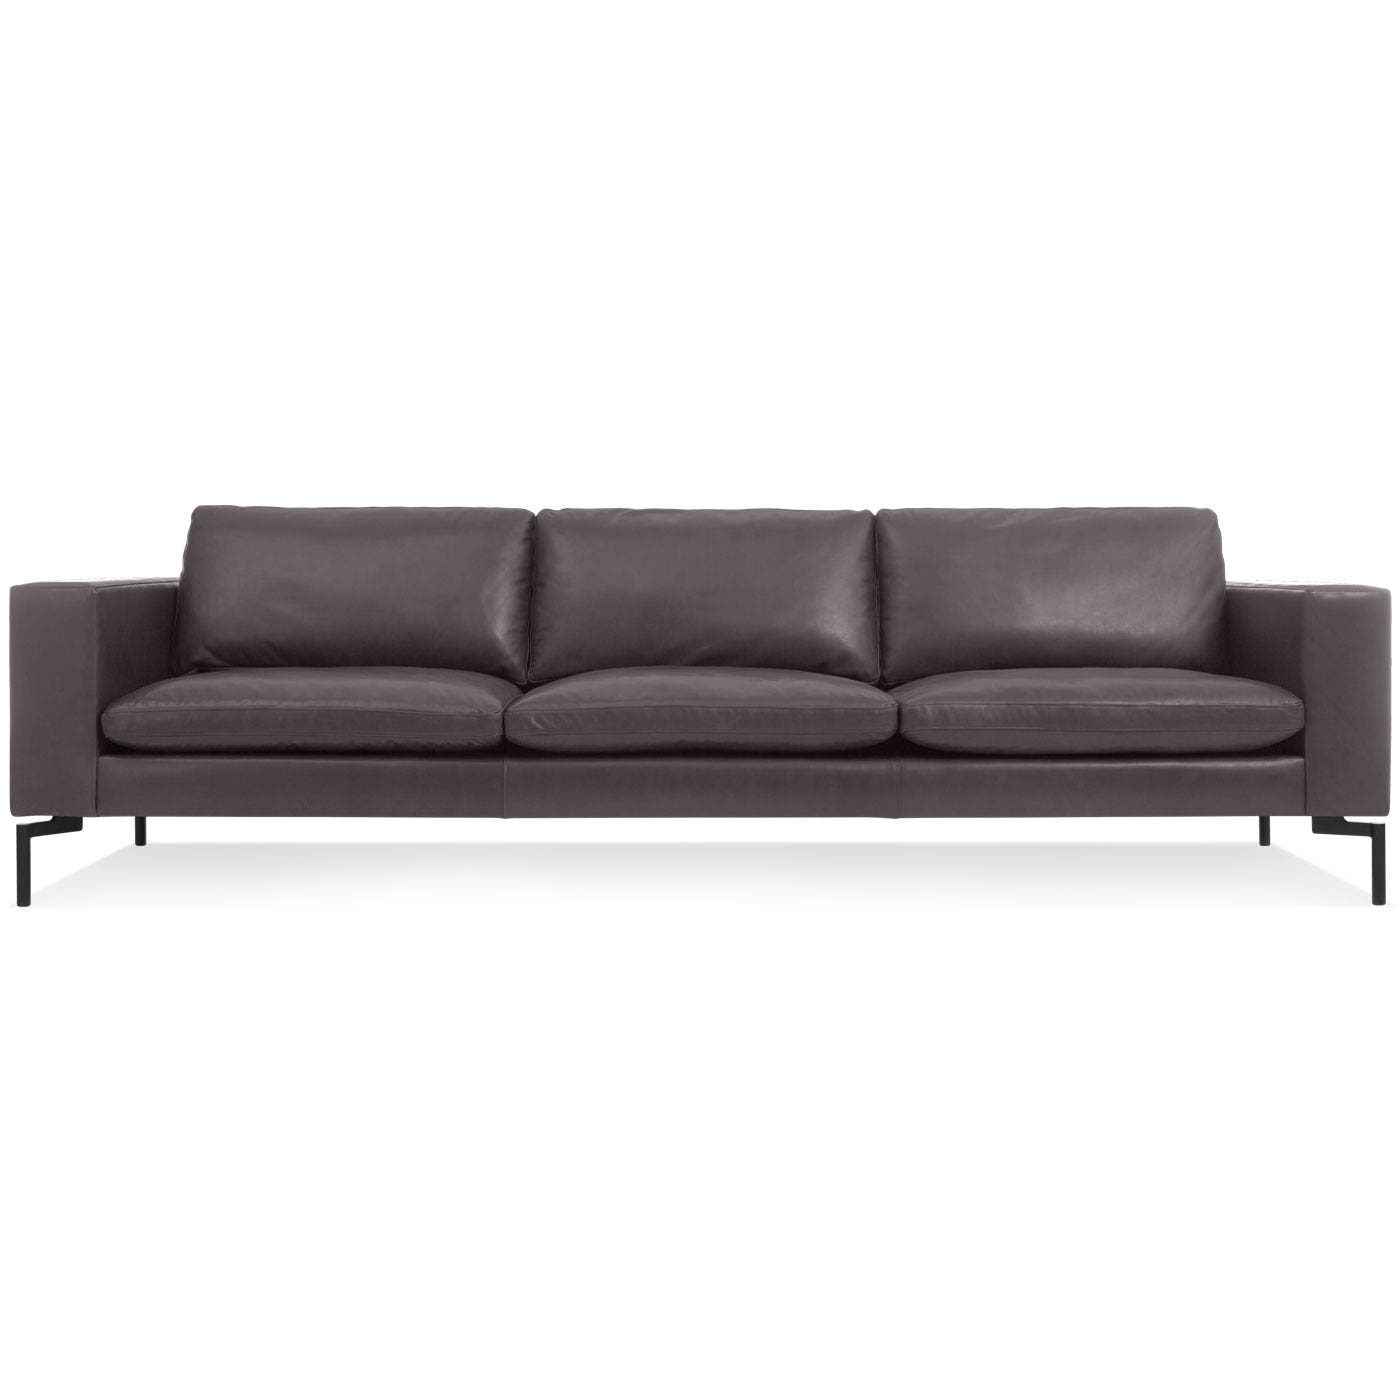 New Standard 92 Inch Leather Sofa - Modern Sofas and ...